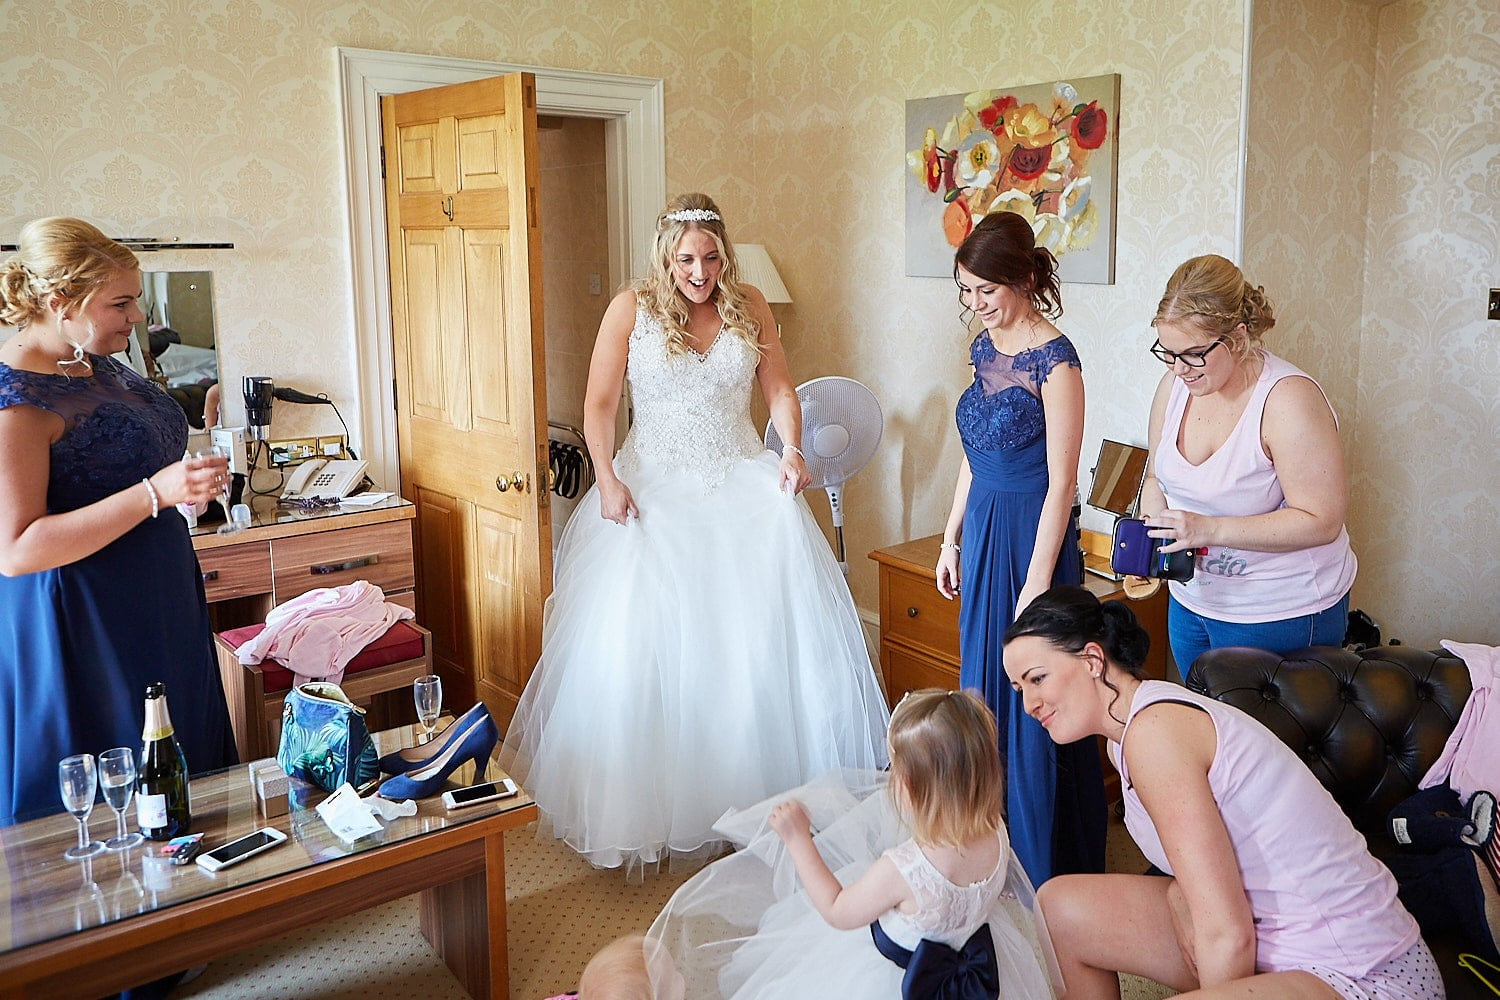 A bride reveals her dress to her wedding party